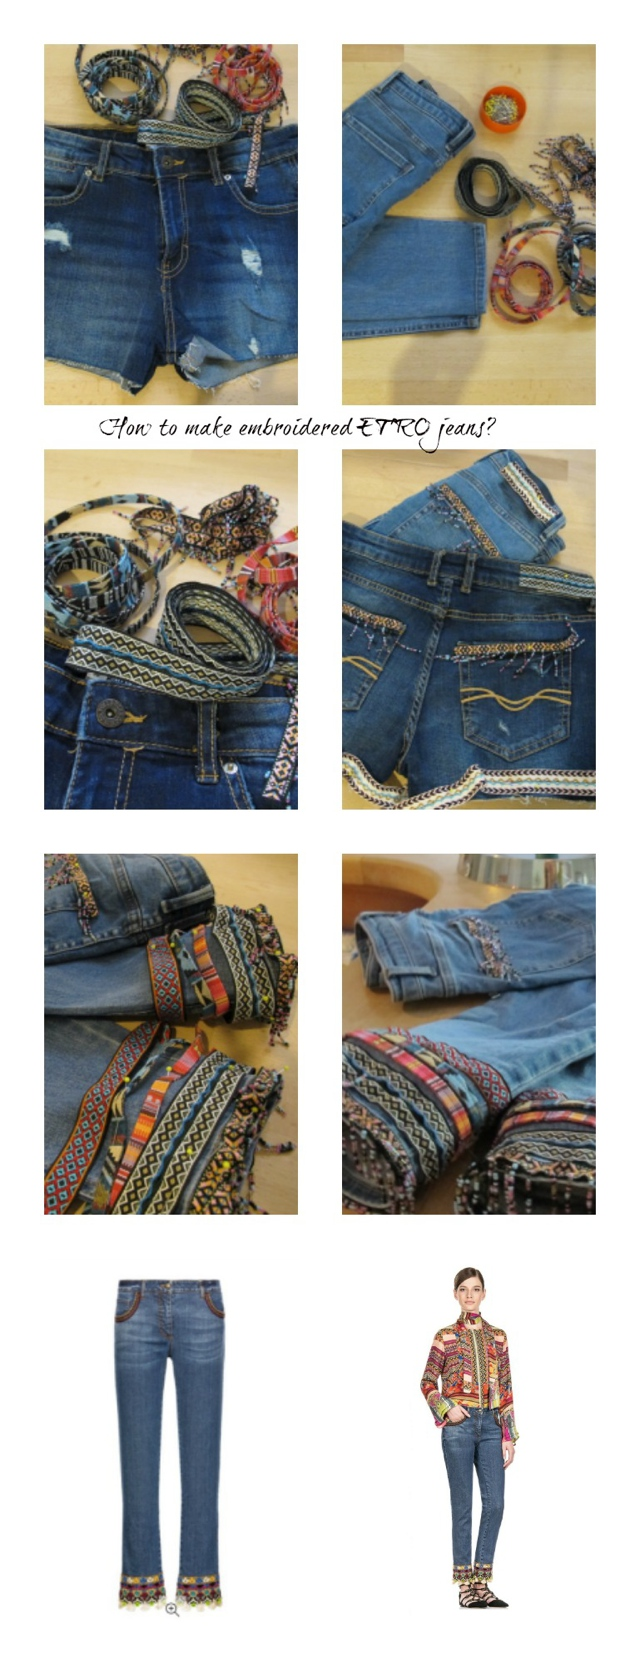 How to make ETRO jeans